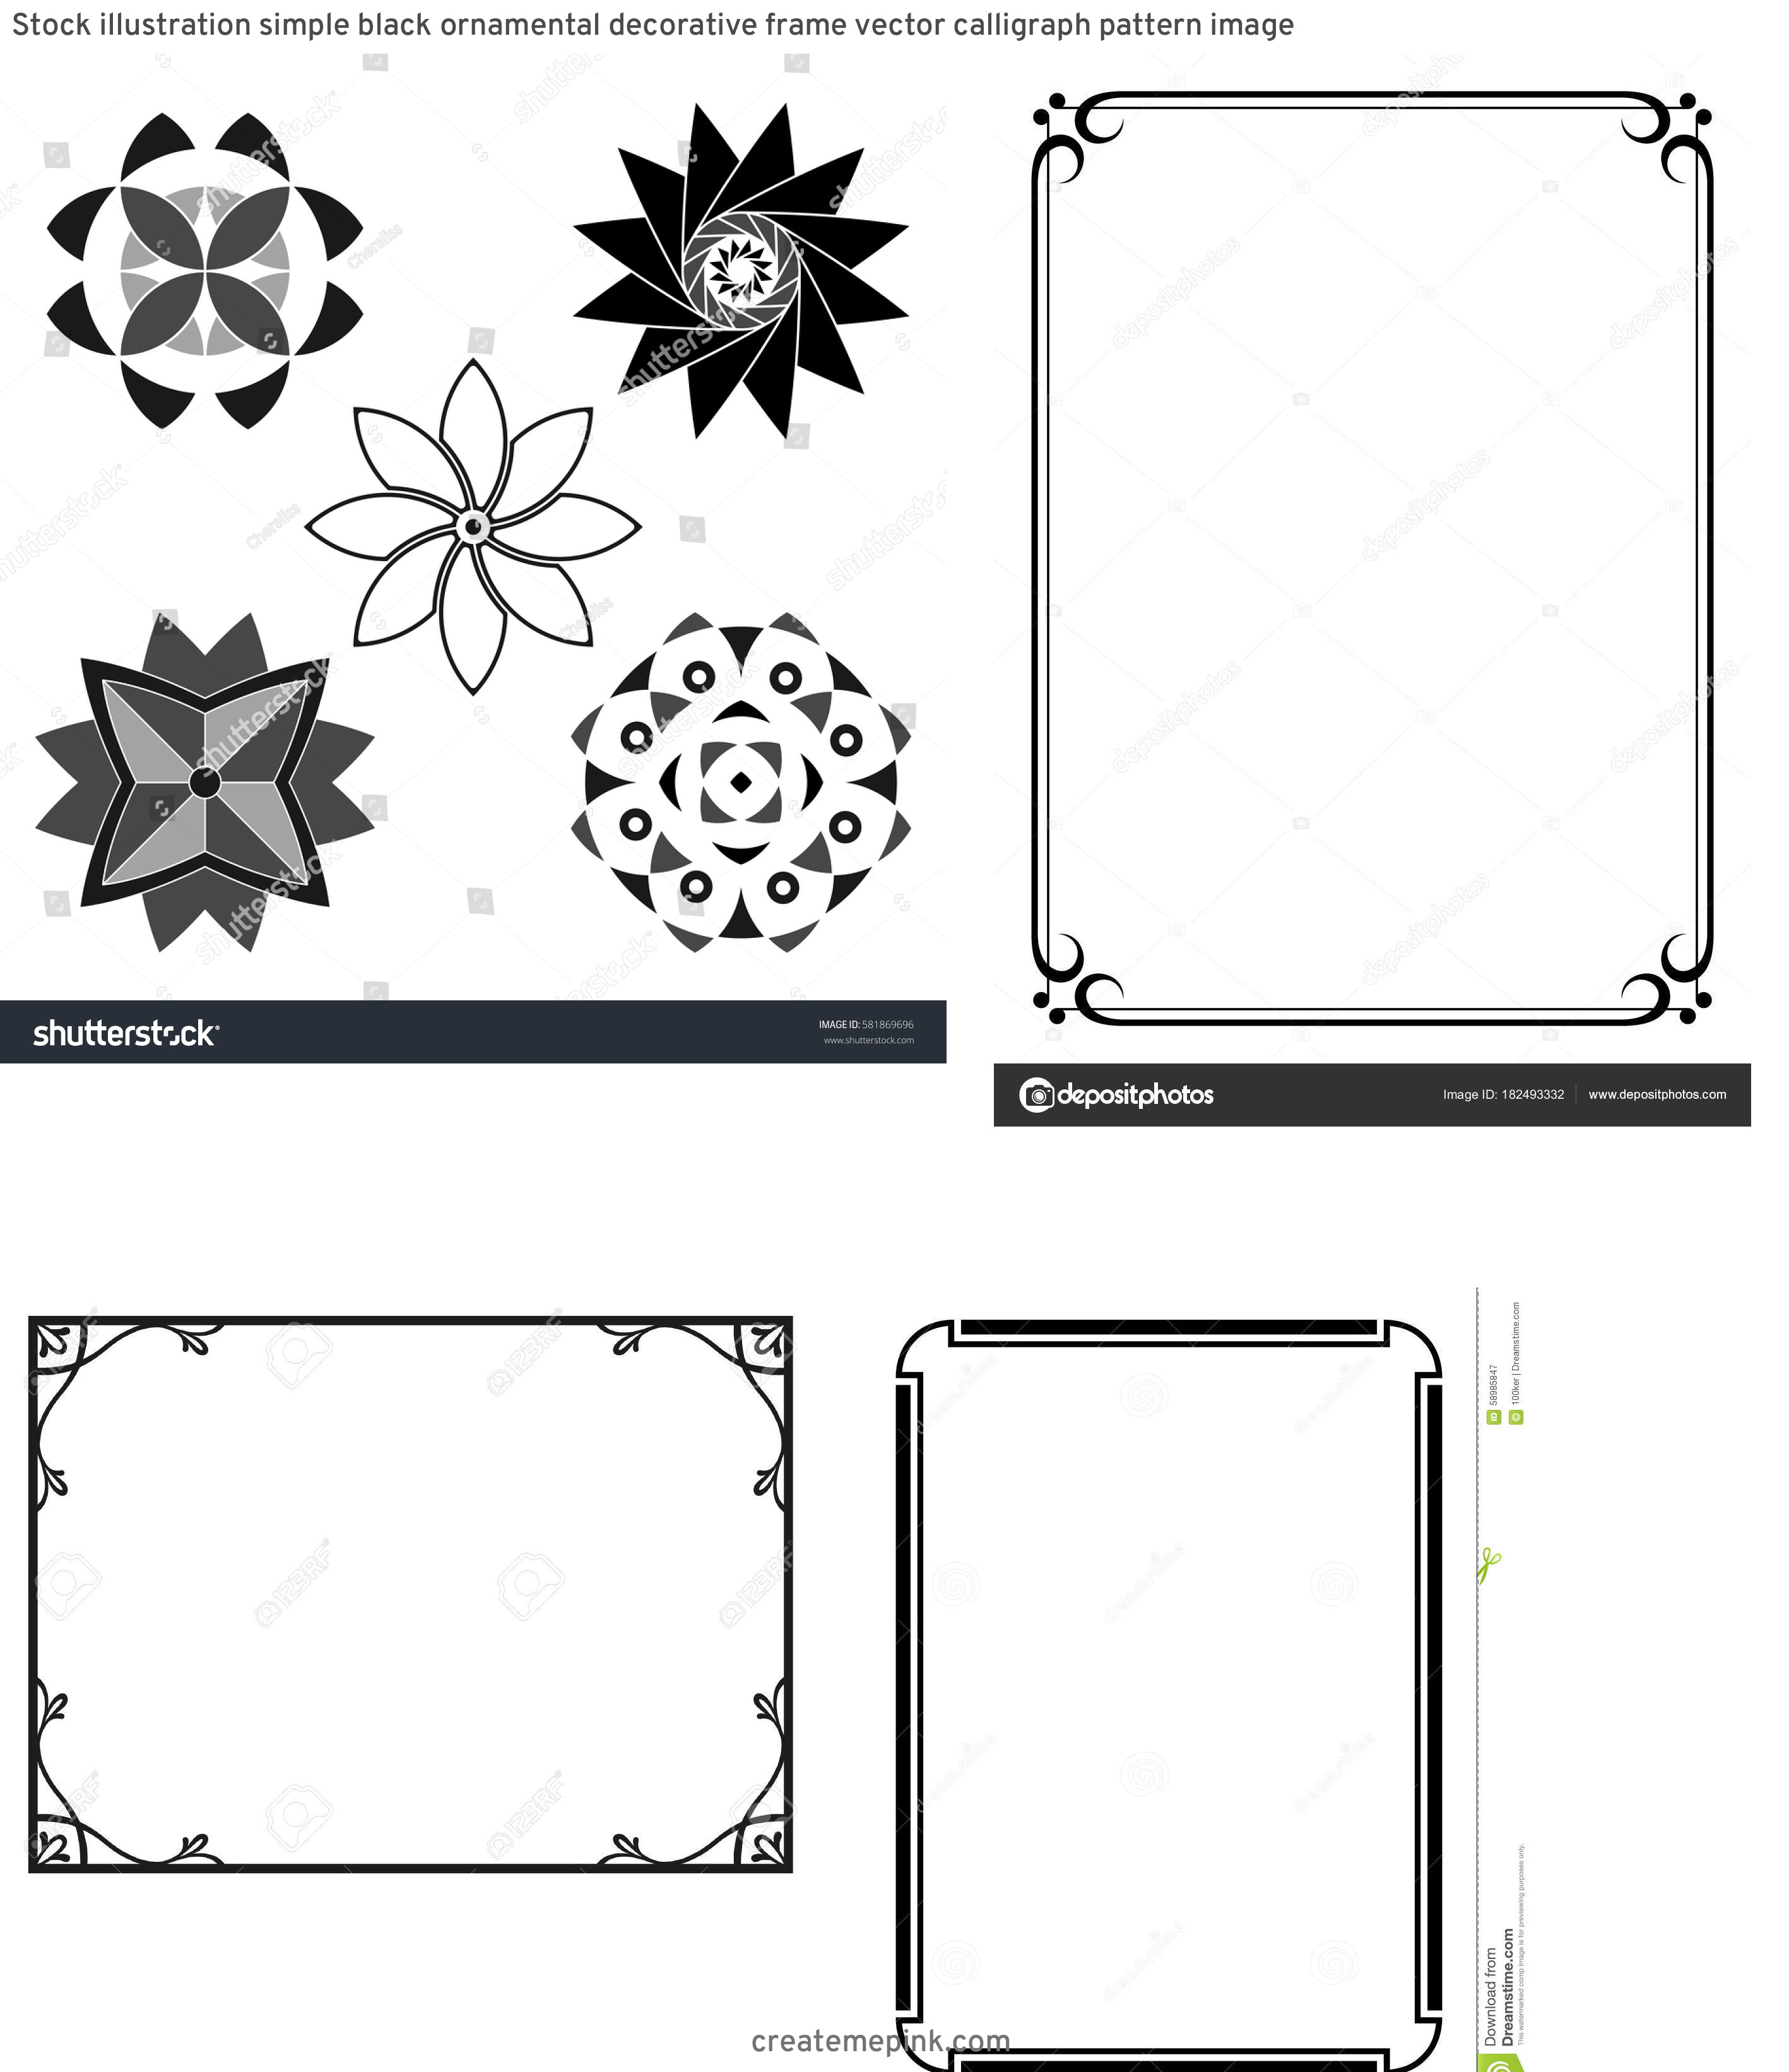 Simple Black Decorative Vector Patterns: Stock Illustration Simple Black Ornamental Decorative Frame Vector Calligraph Pattern Image